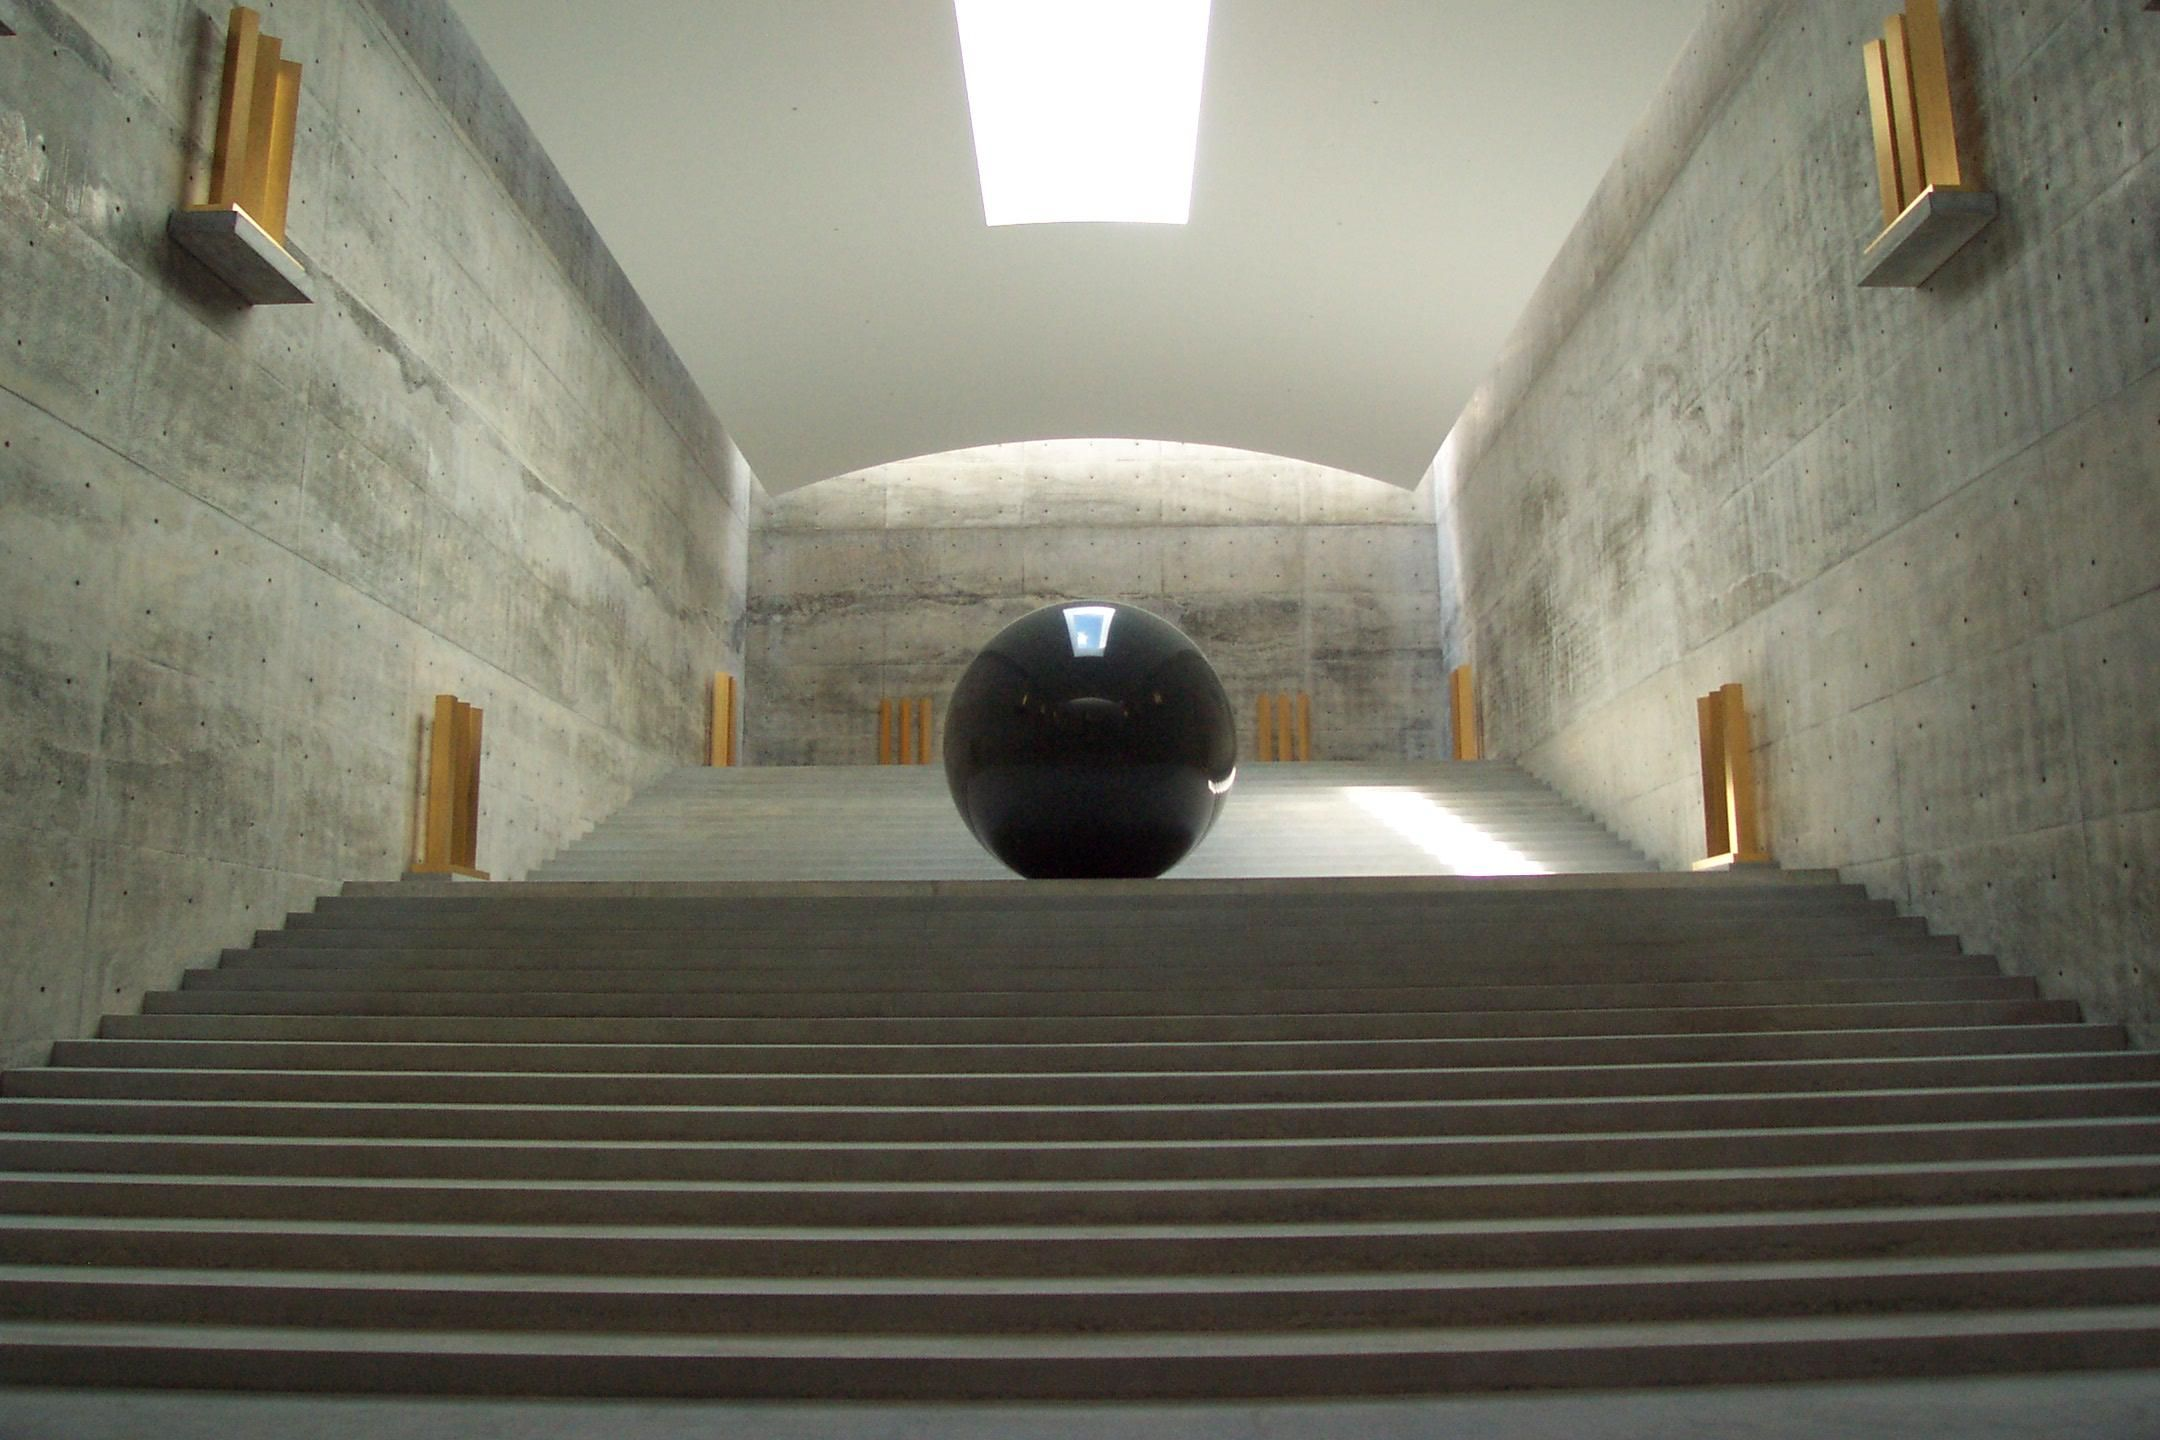 Ando tadao rokko house pinterest - Large Room With Ball Tadao Ando